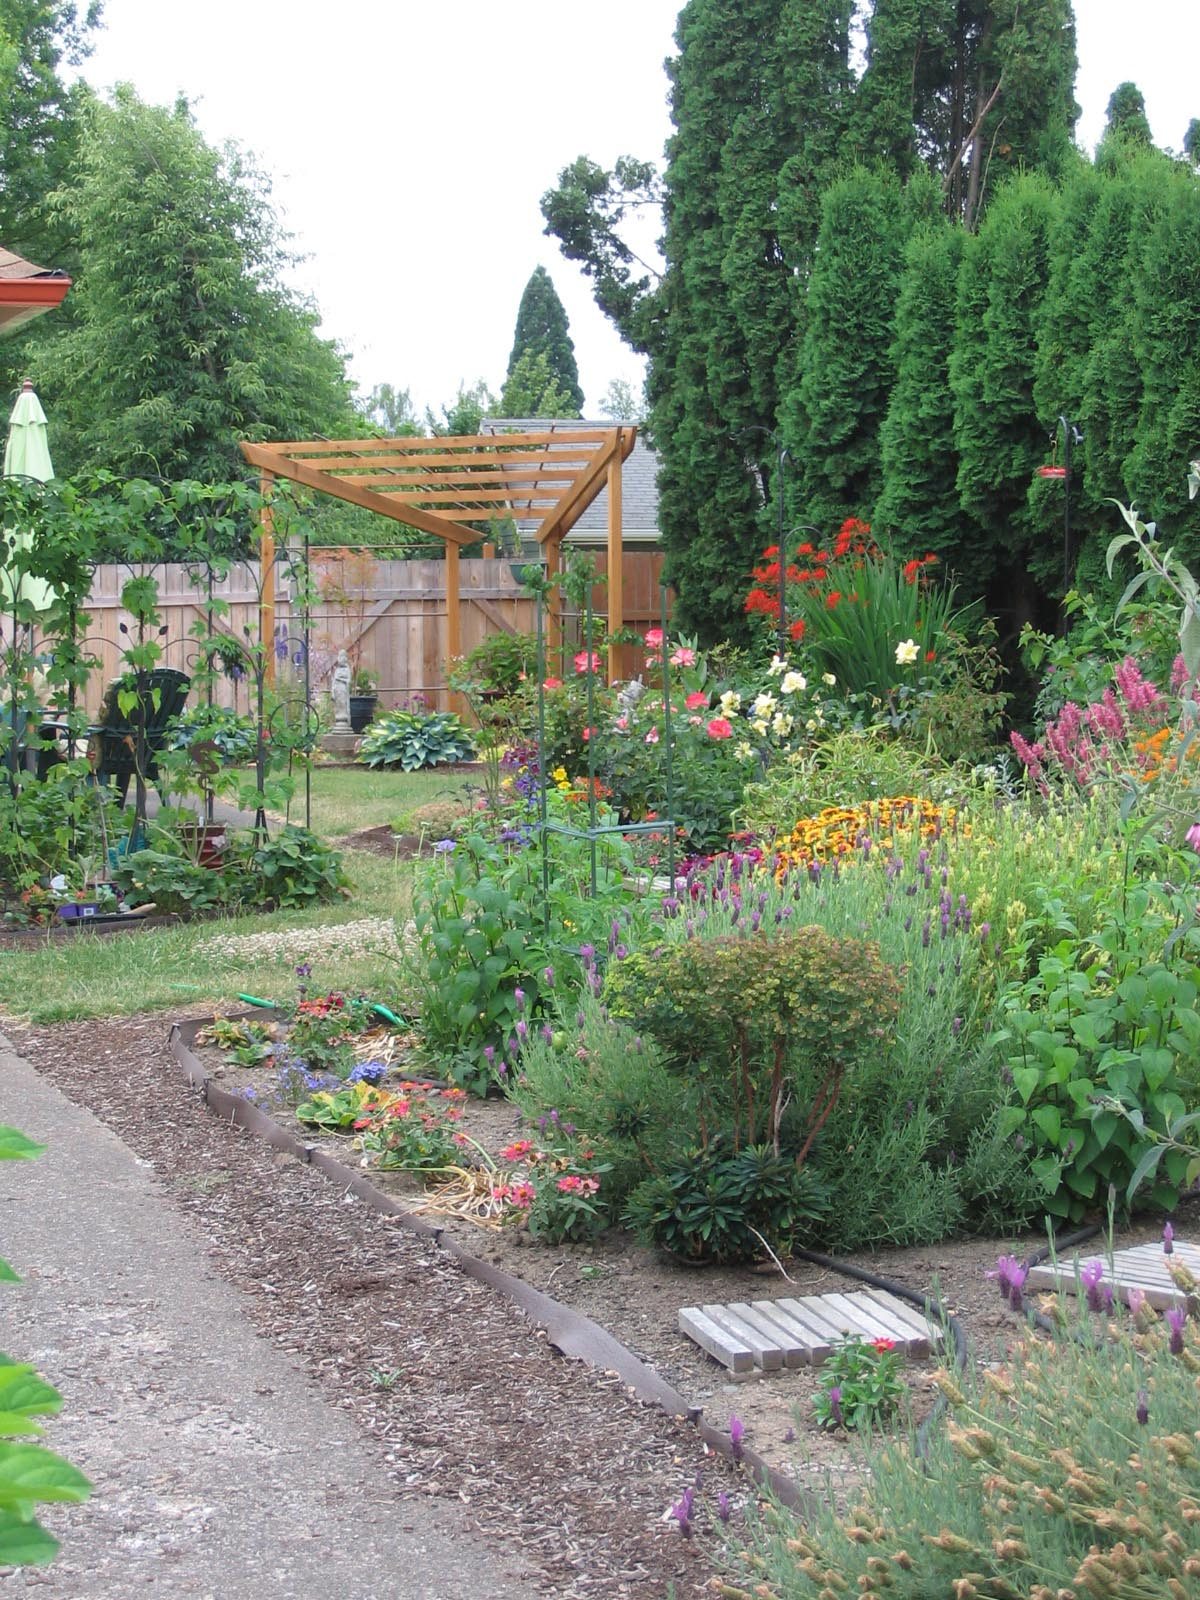 View behind the front garden project, into the house yard